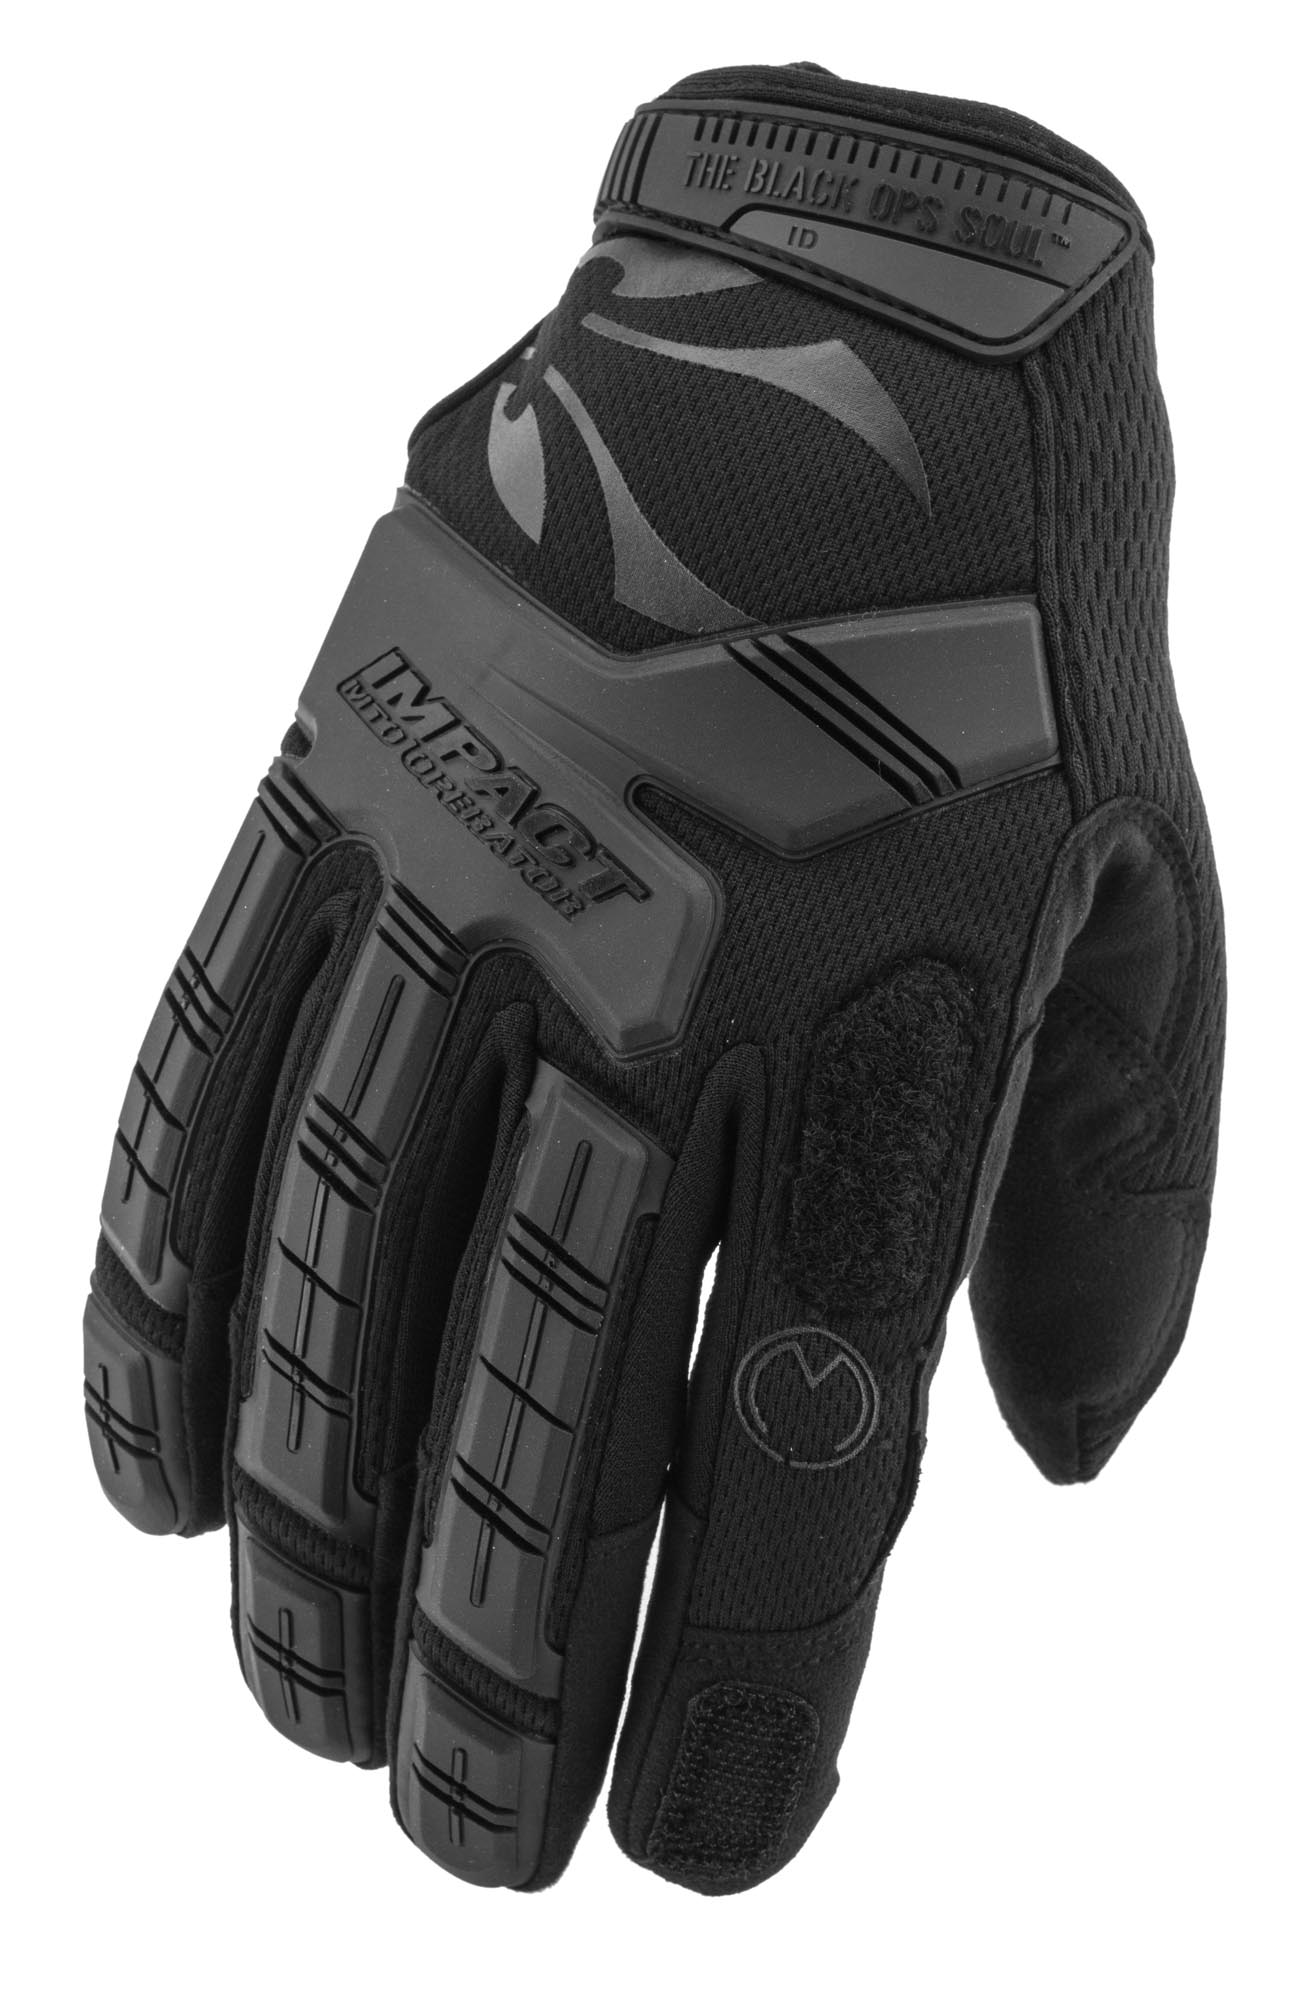 Photo Gants - MTO OPERATOR by Mechanix - Covert - Taille/size XL